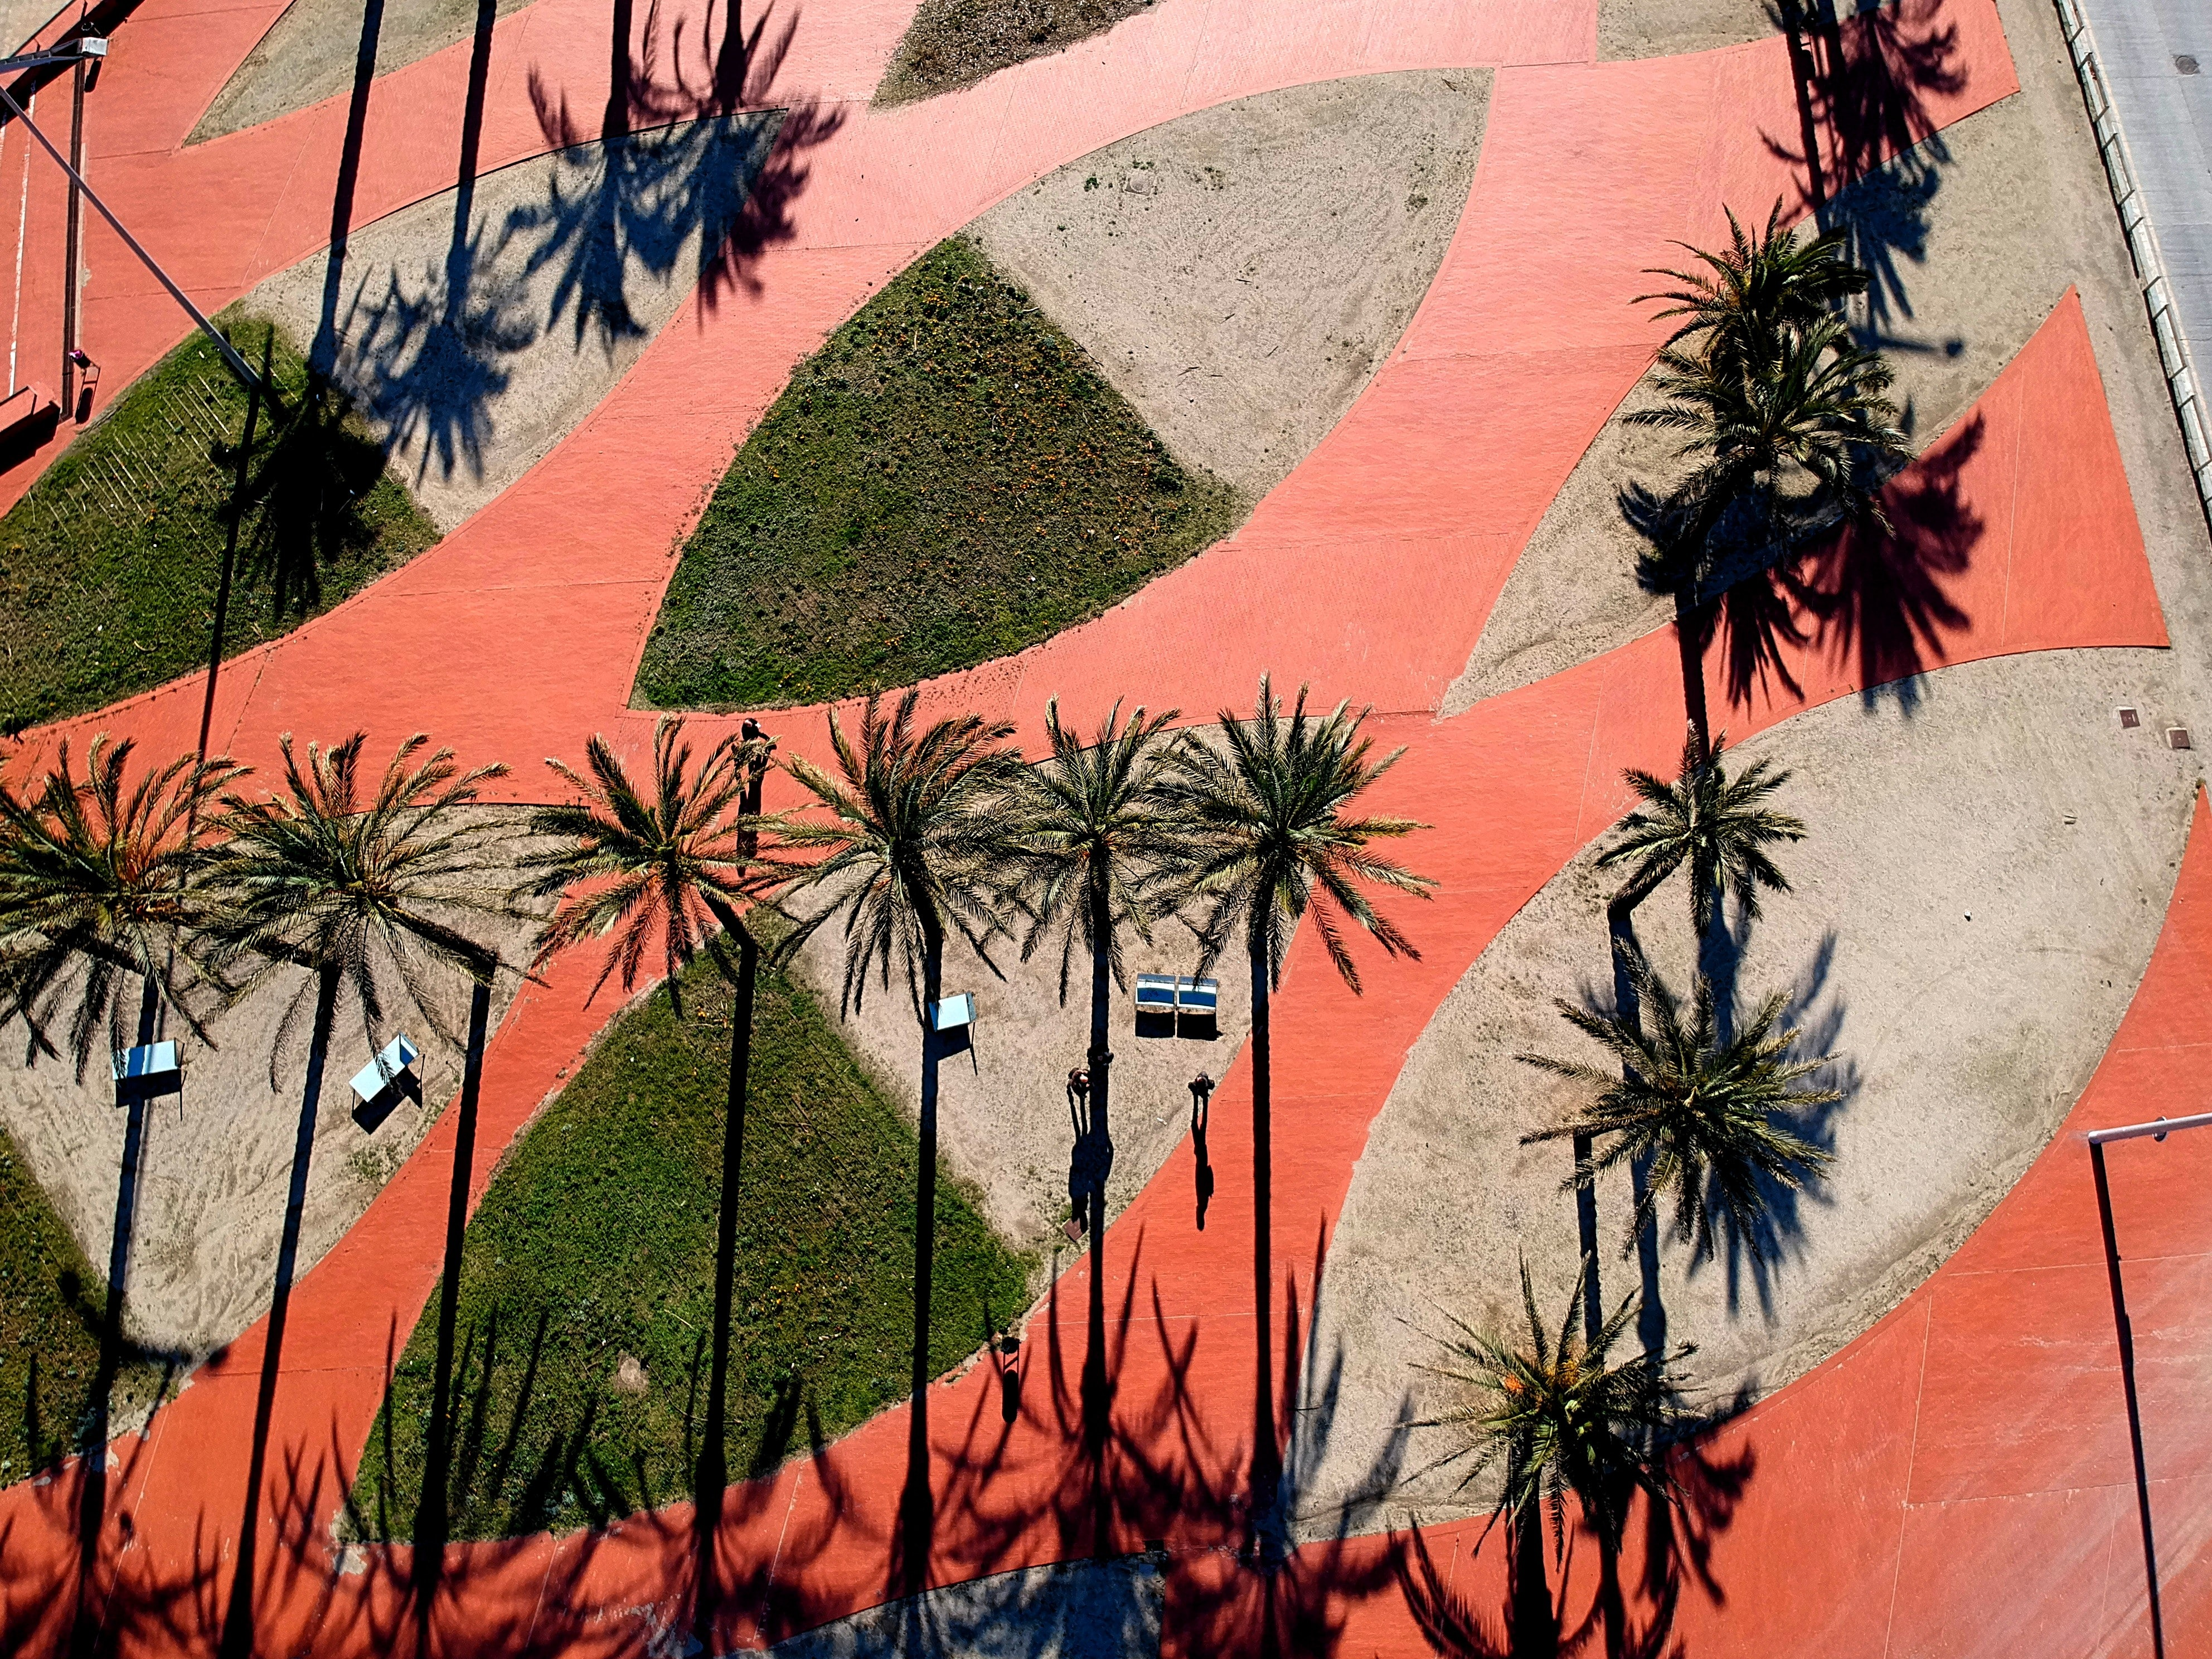 birds eye view of tropical trees